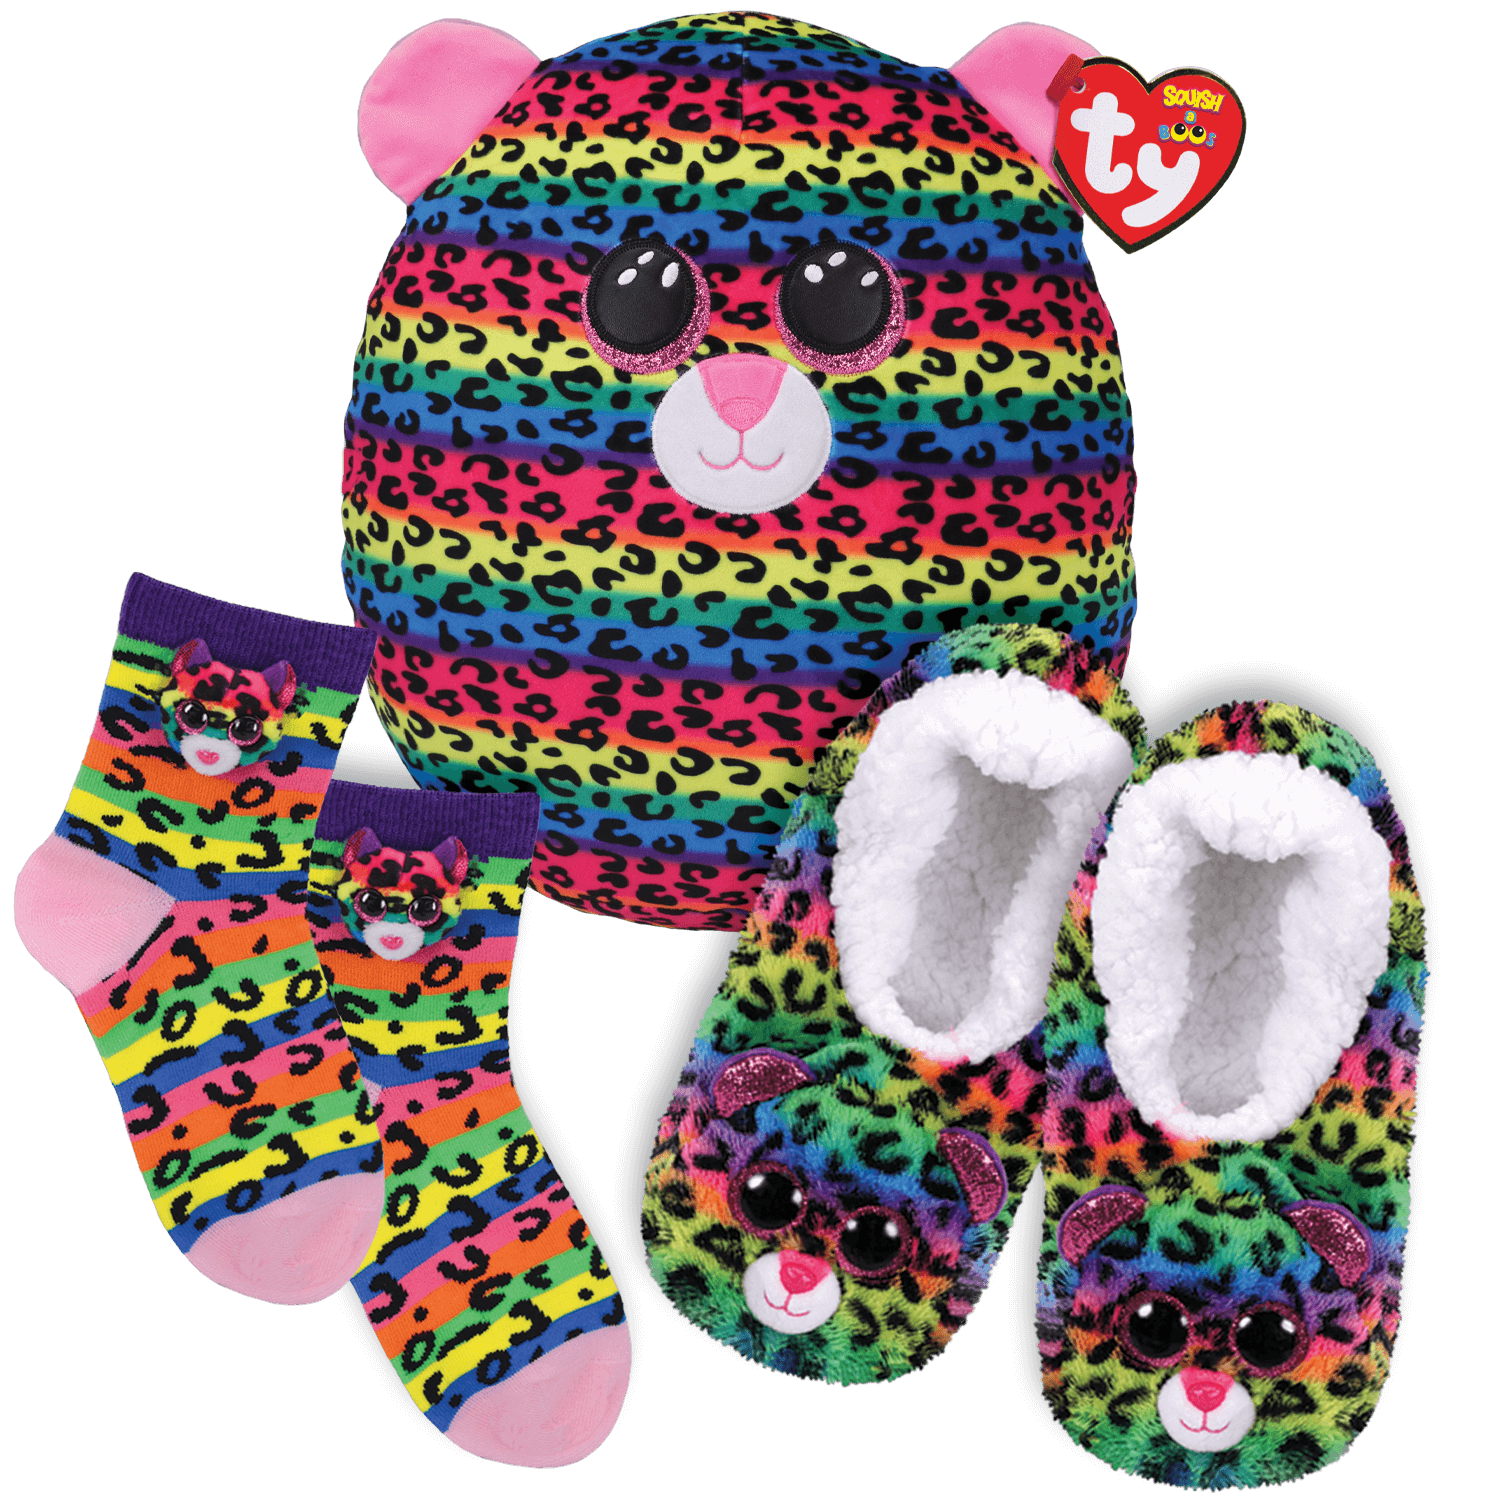 Dotty Dream Bundle - Slippers, Socks And Squish A Boo